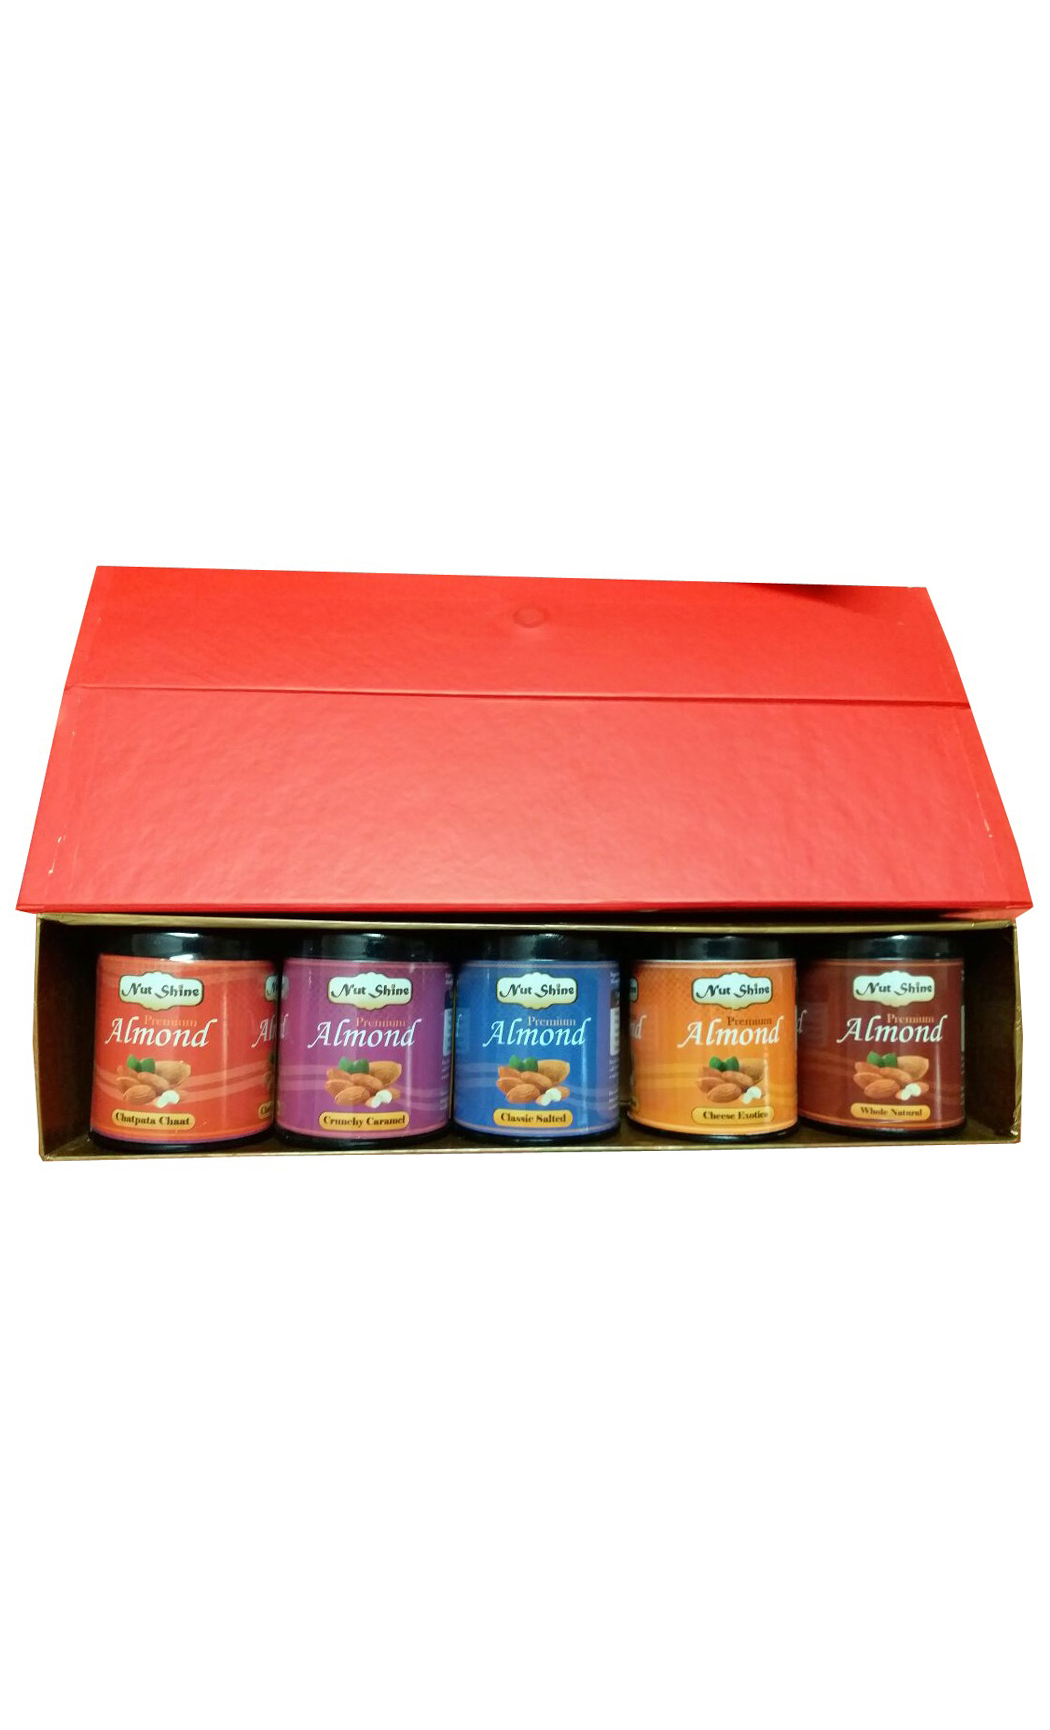 Flavoured Almond Gift Box Set of 5- 90gm Boxes - Buy Online